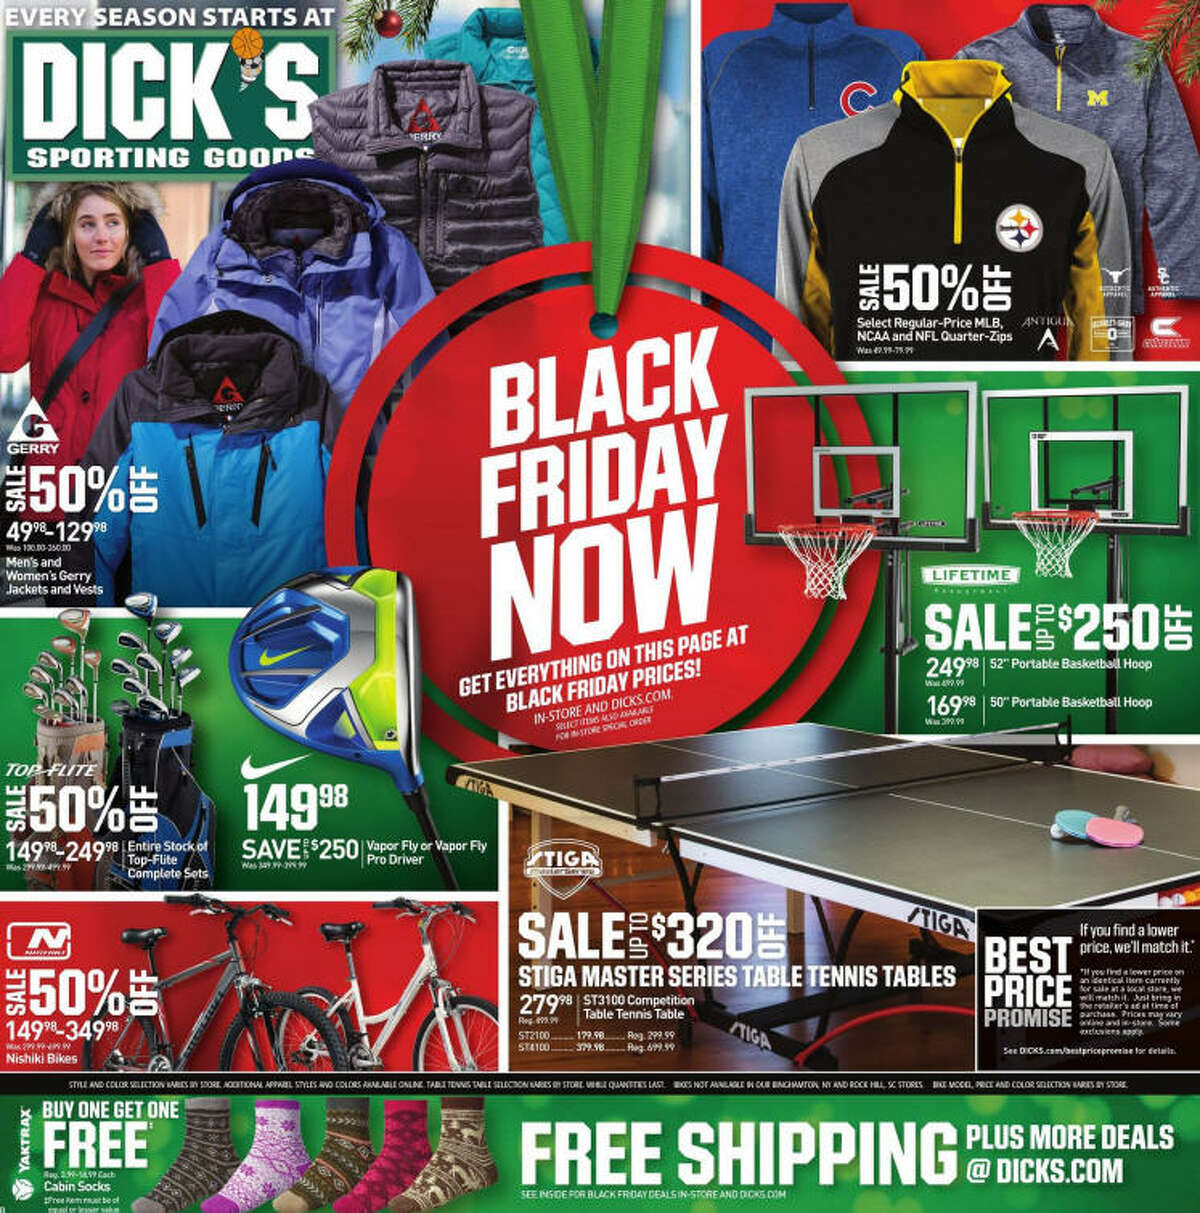 Dick's Sporting Goods has Black Friday deals ahead of the day, but we are still waiting on their official Black Friday ad to be released.